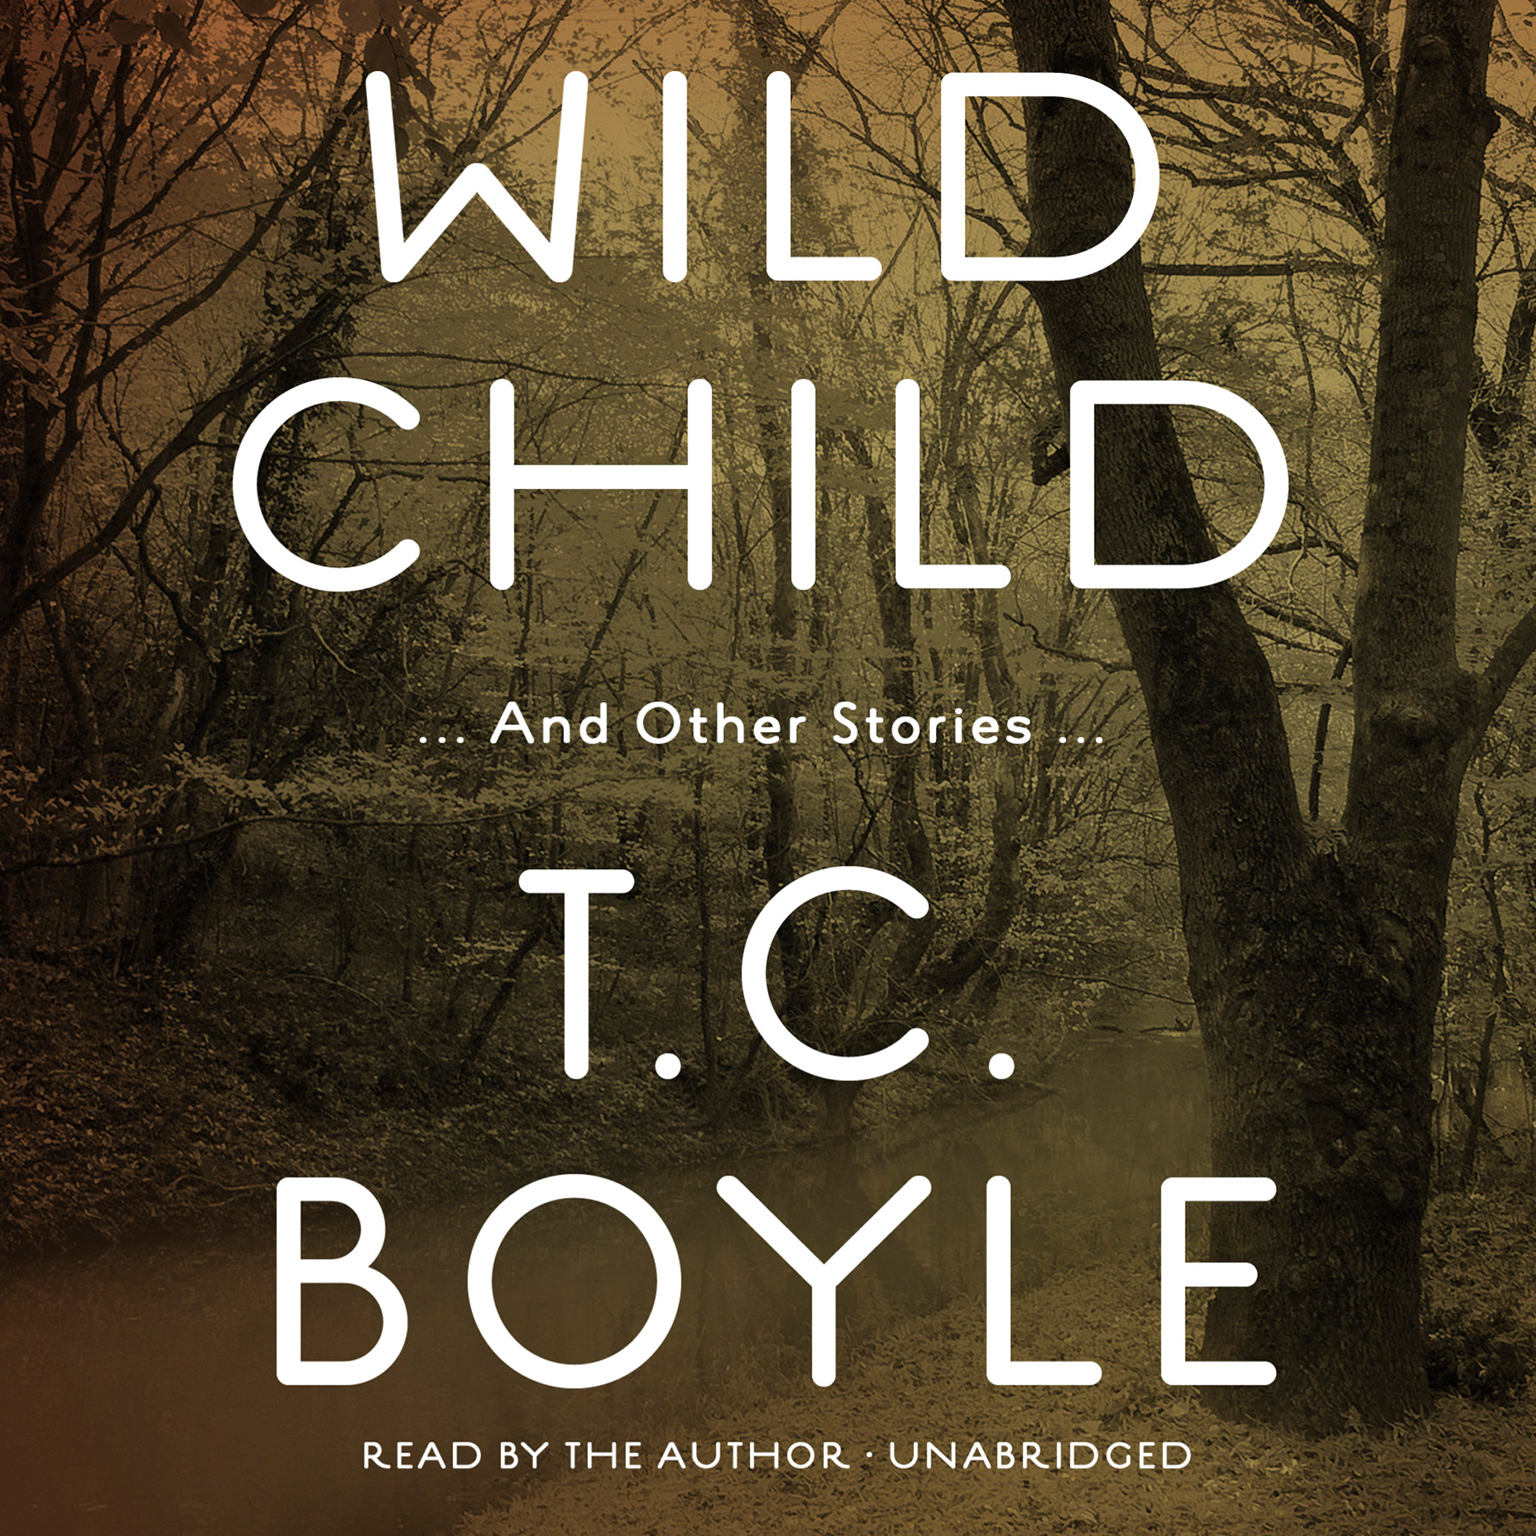 Printable Wild Child, and Other Stories Audiobook Cover Art